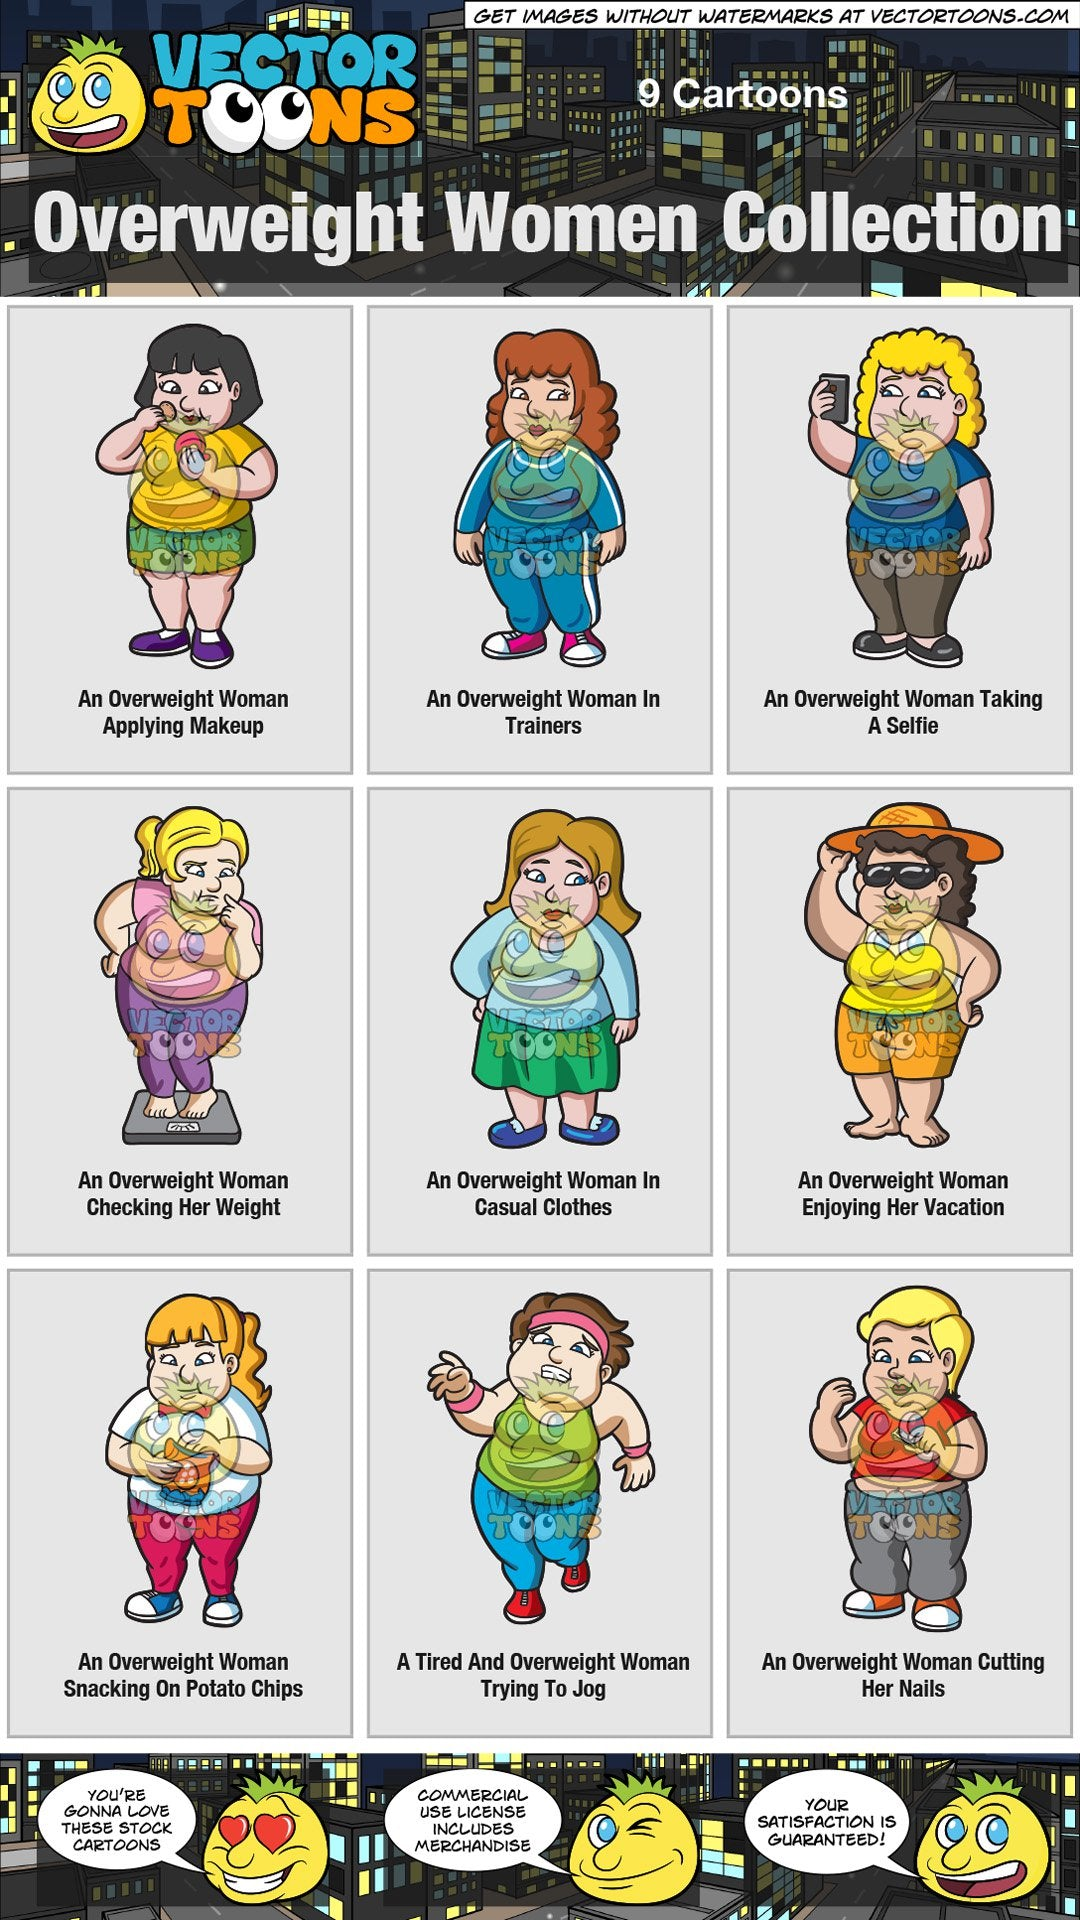 Overweight Women Collection